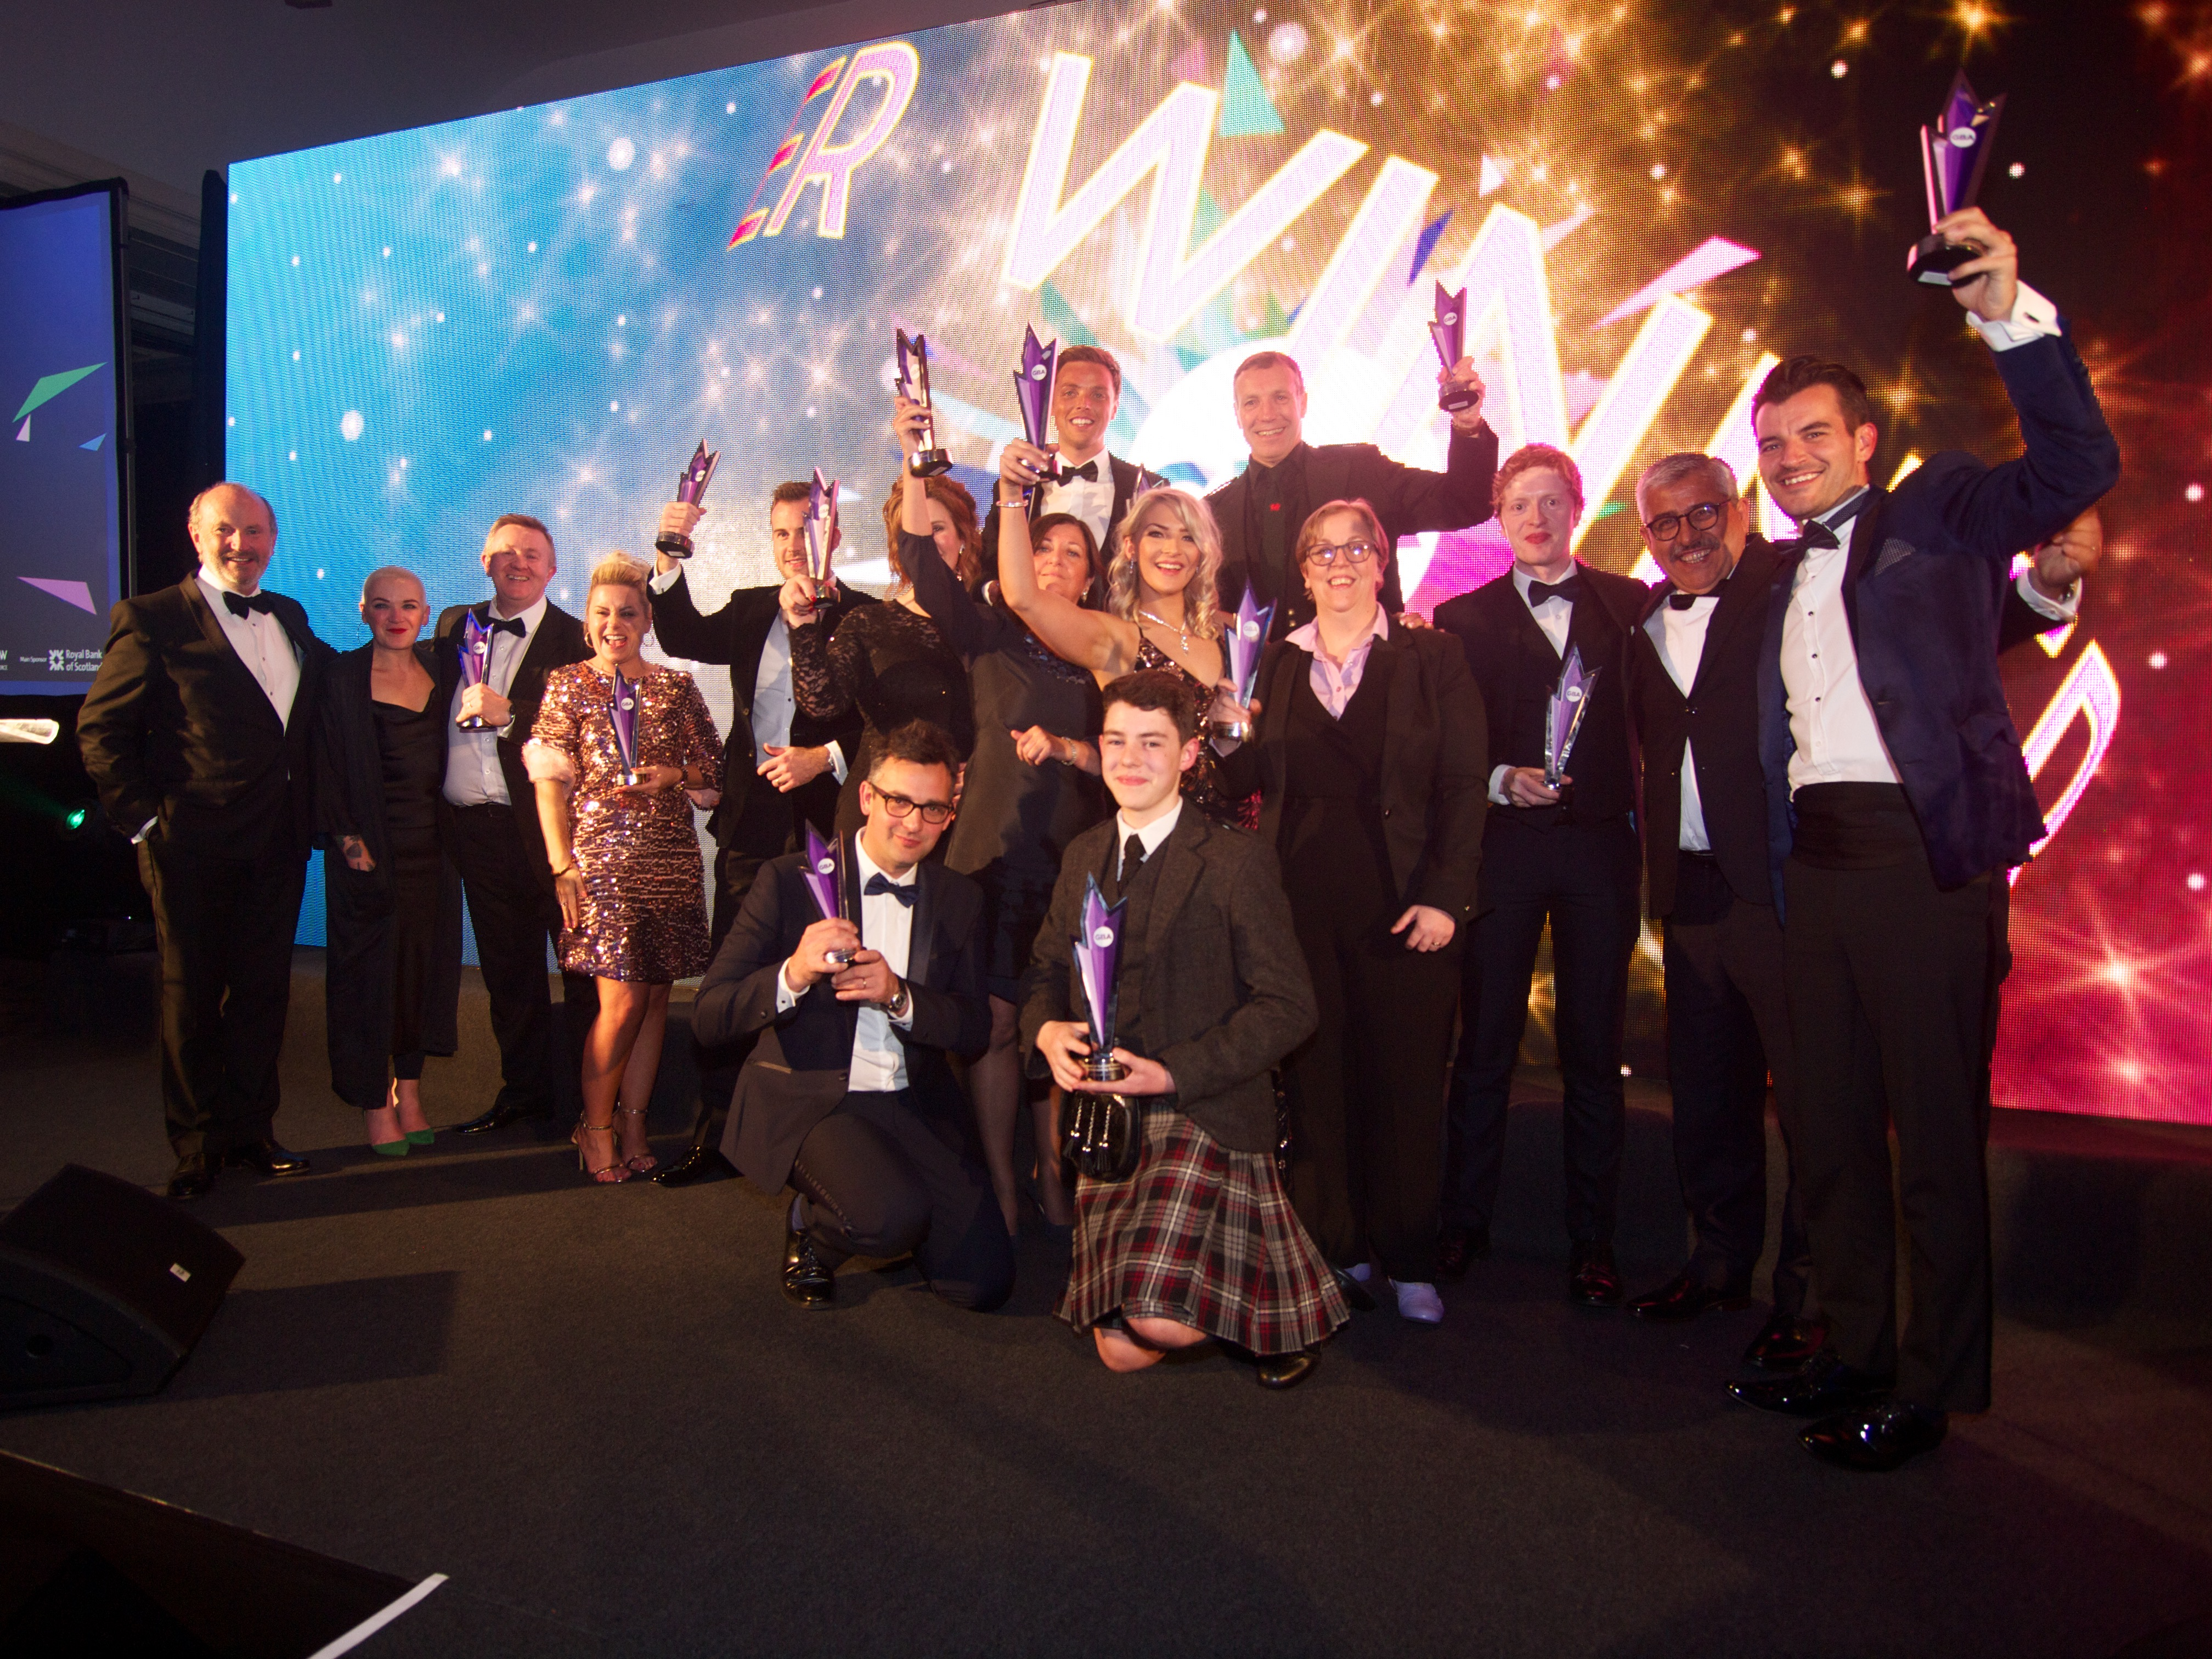 Image for : The Glasgow Business Awards 2019 - Winners Announced